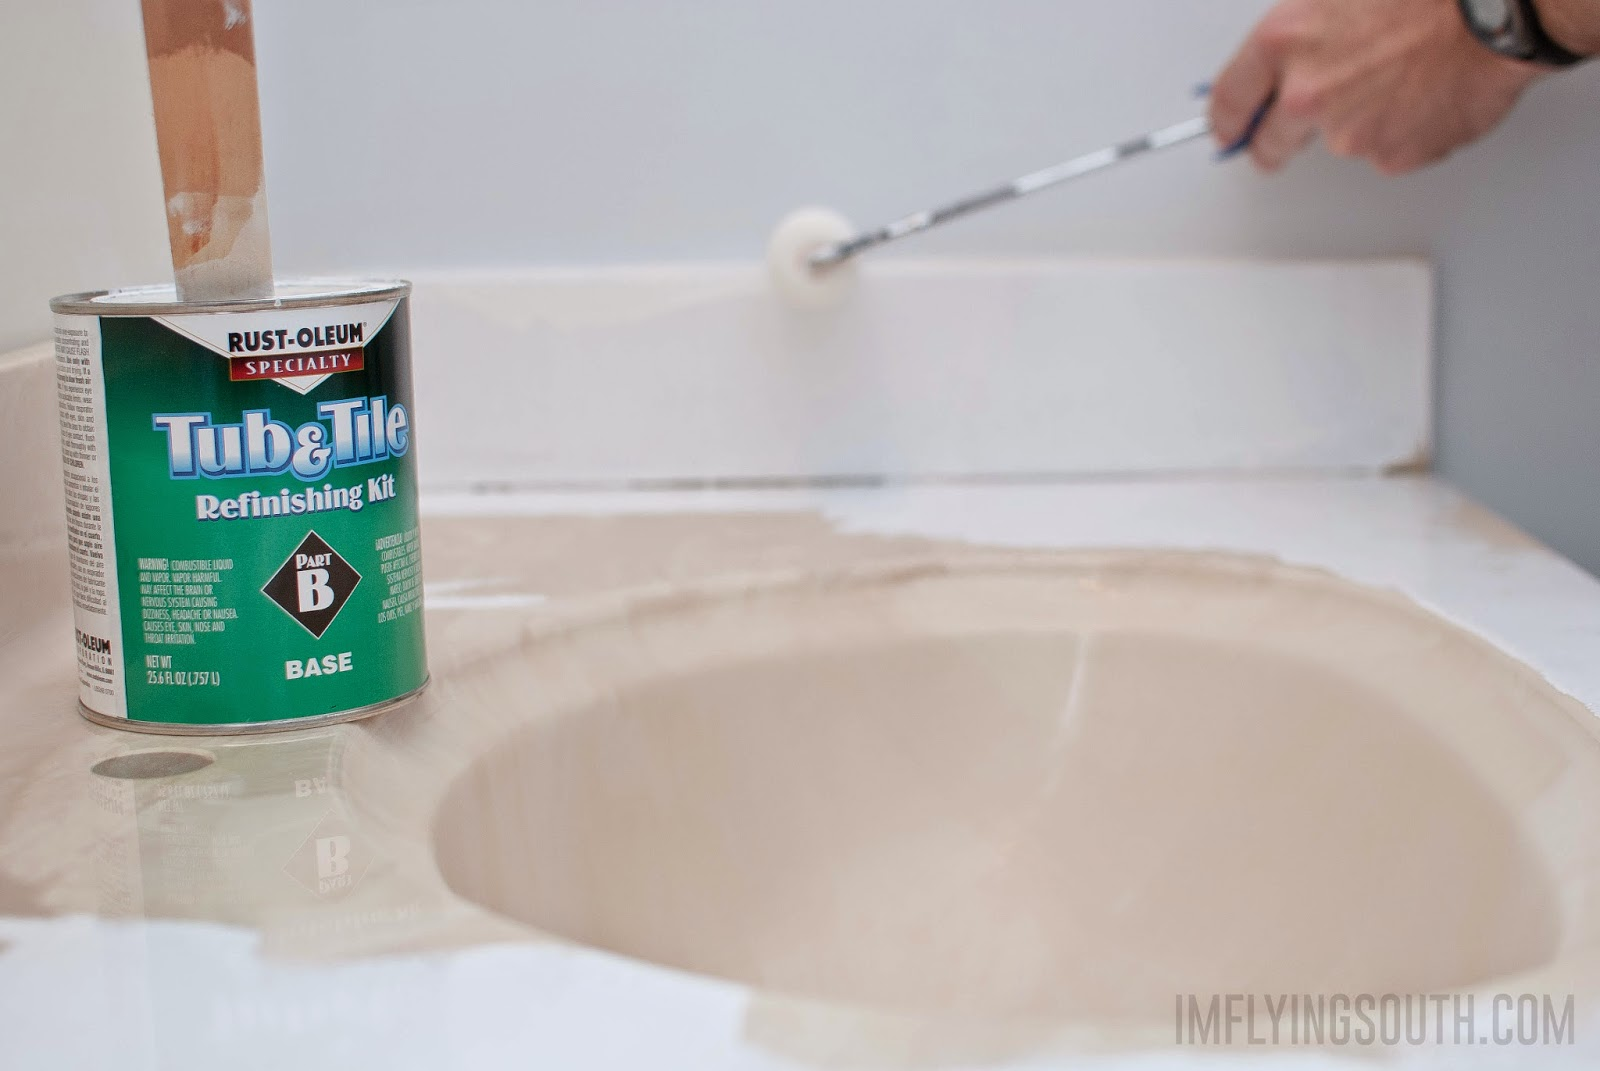 Awesome Painting A Bathtub Tiny Bathtub Restoration Companies Square Can A Bathtub Be Painted Can You Paint A Porcelain Bathtub Old Shower Refinishing Cost ColouredRefinish Clawfoot Tub Cost Remodelaholic | Painted Bathroom Sink And Countertop Makeover